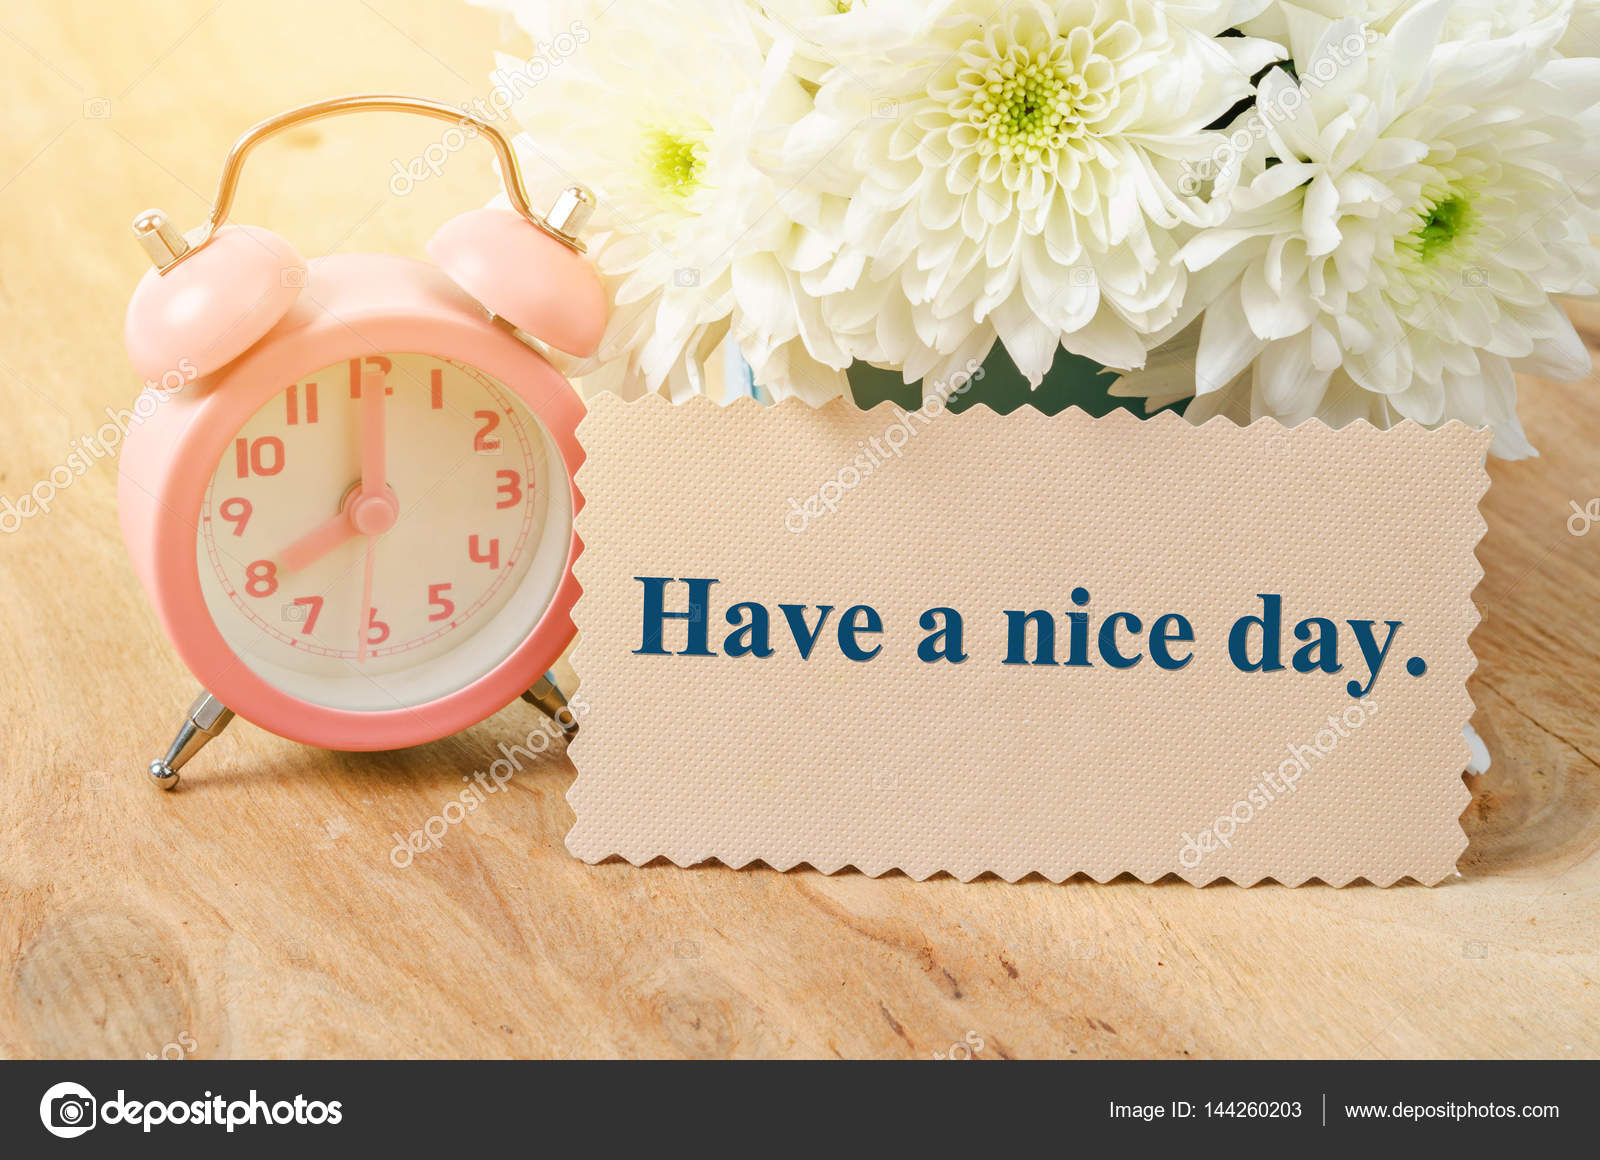 Have a nice day card stock photo gamjai 144260203 have a nice day card stock photo m4hsunfo